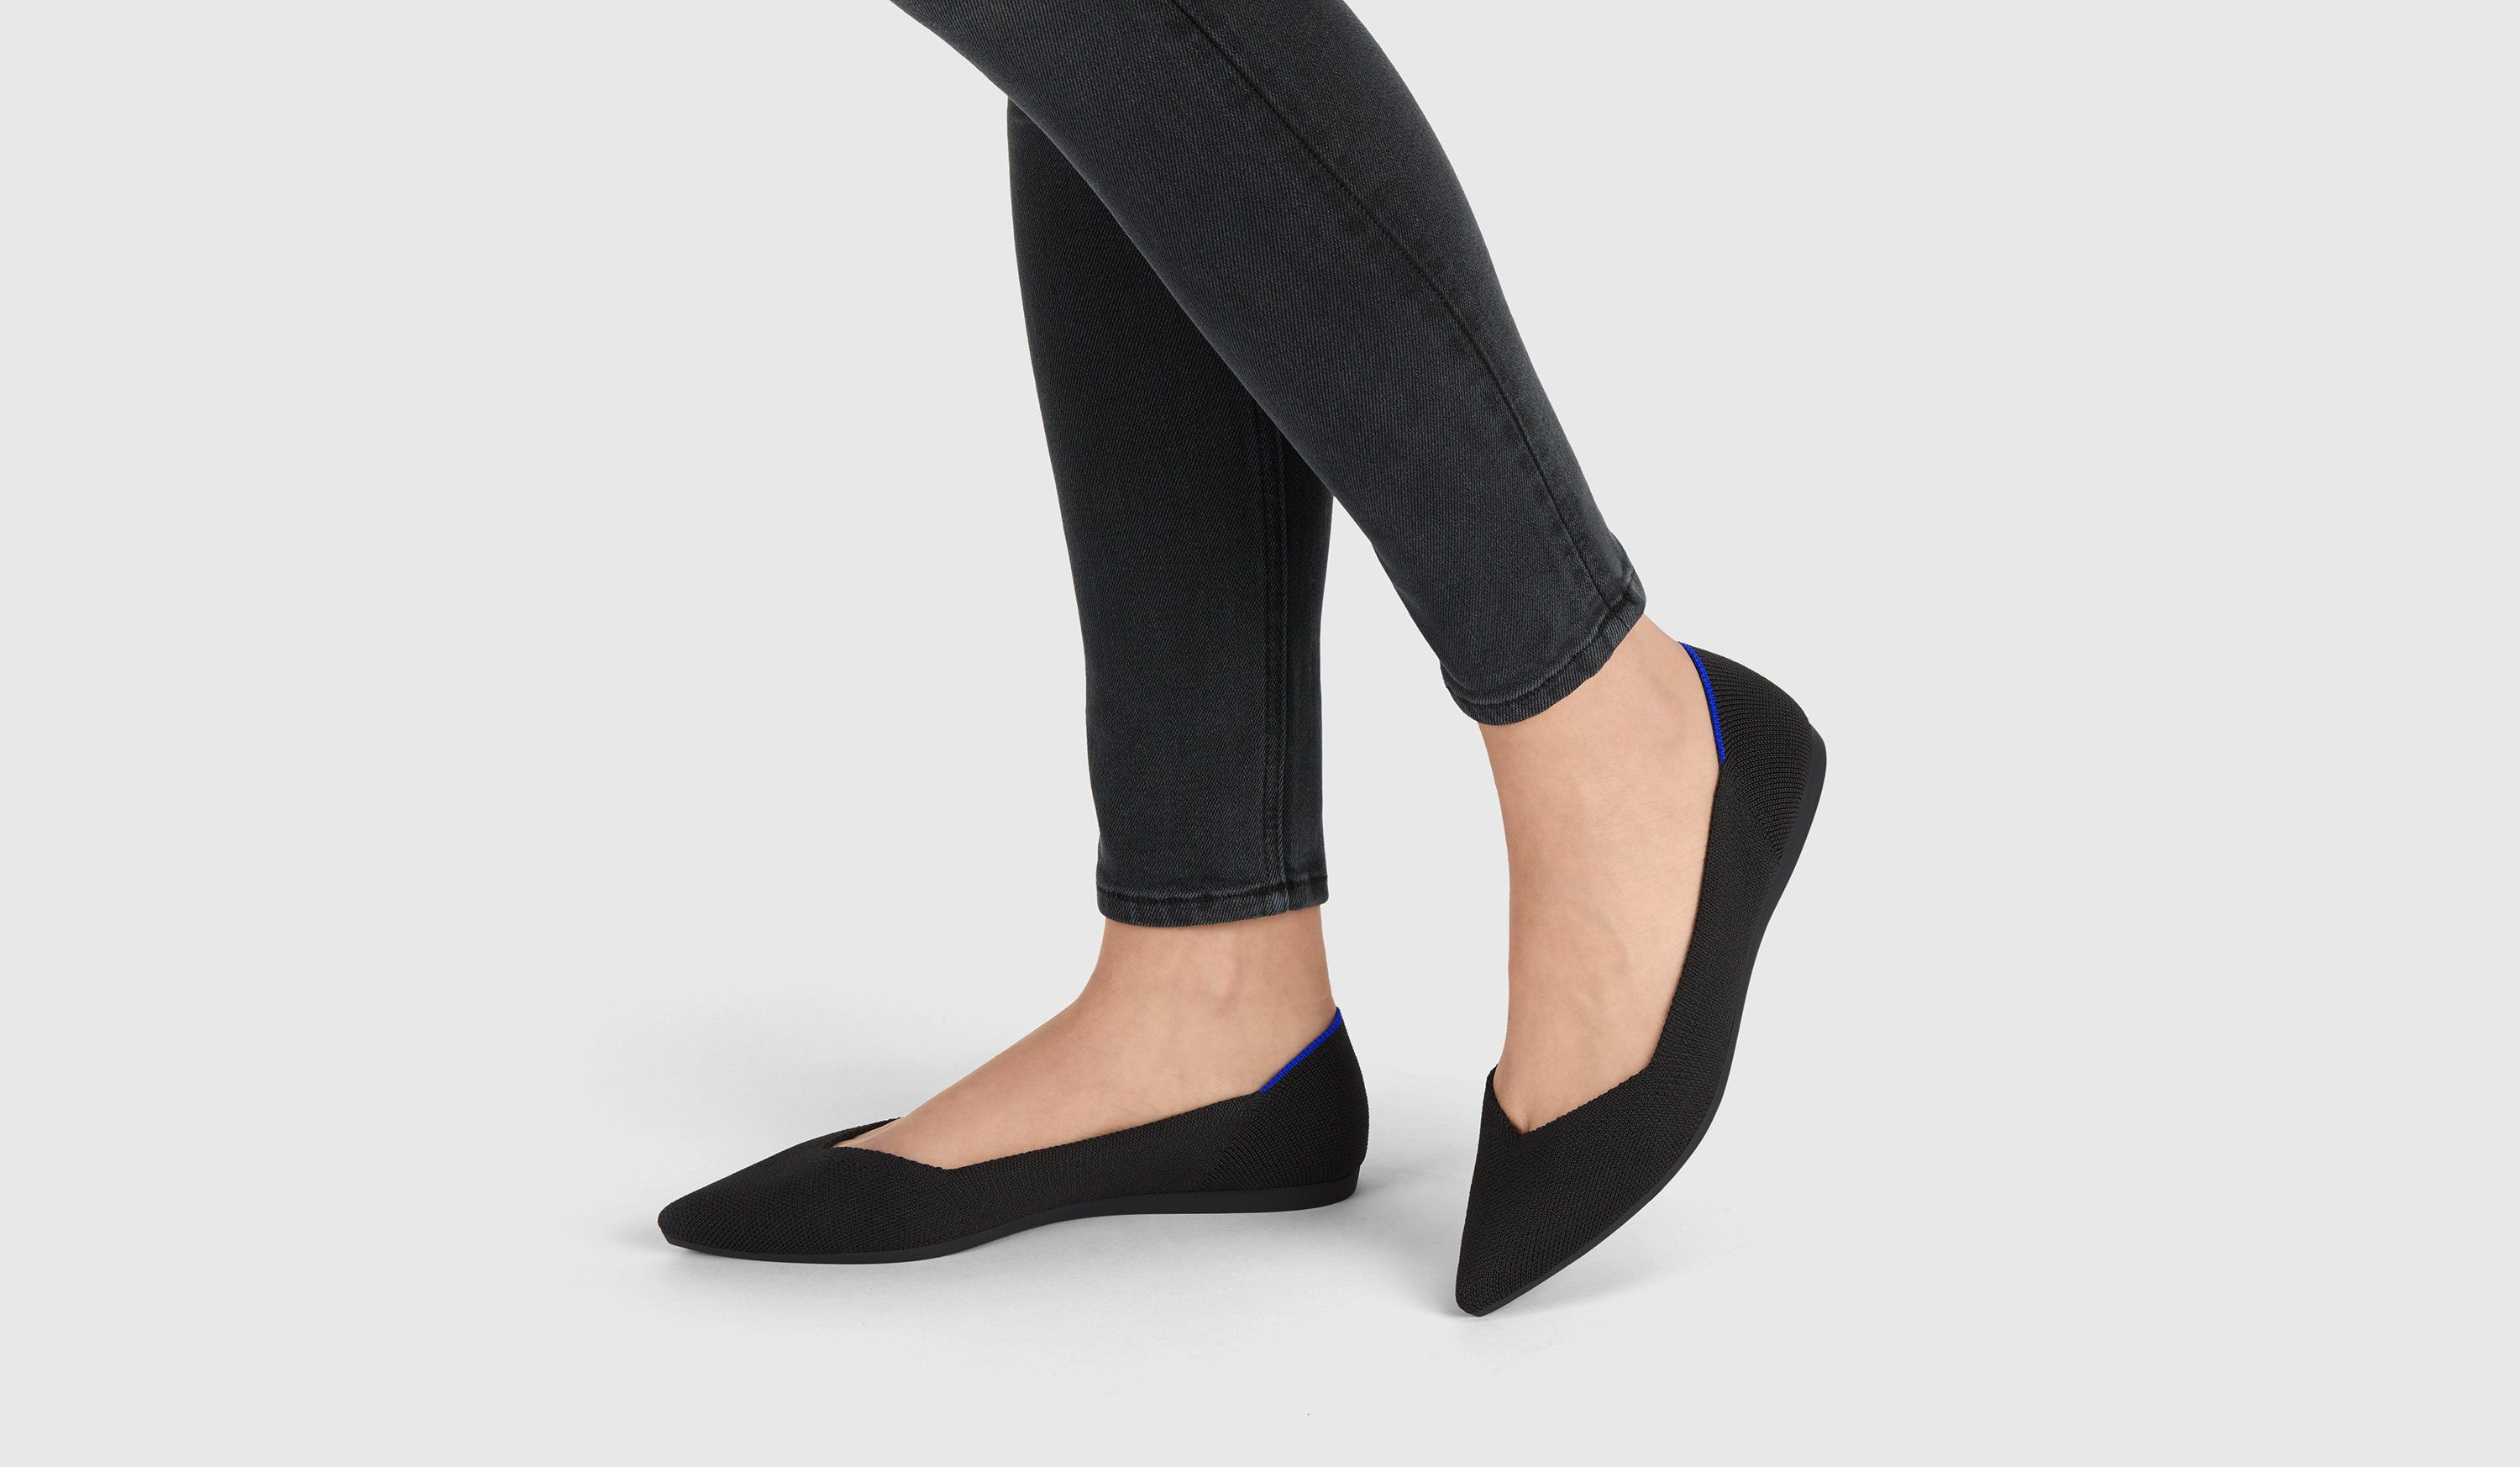 d3b2e1c997cdd Discover ballet flats and pointed toe flats as comfortable as they are  versatile in must-have classic and seasonal colors. FREE US Shipping &  Returns